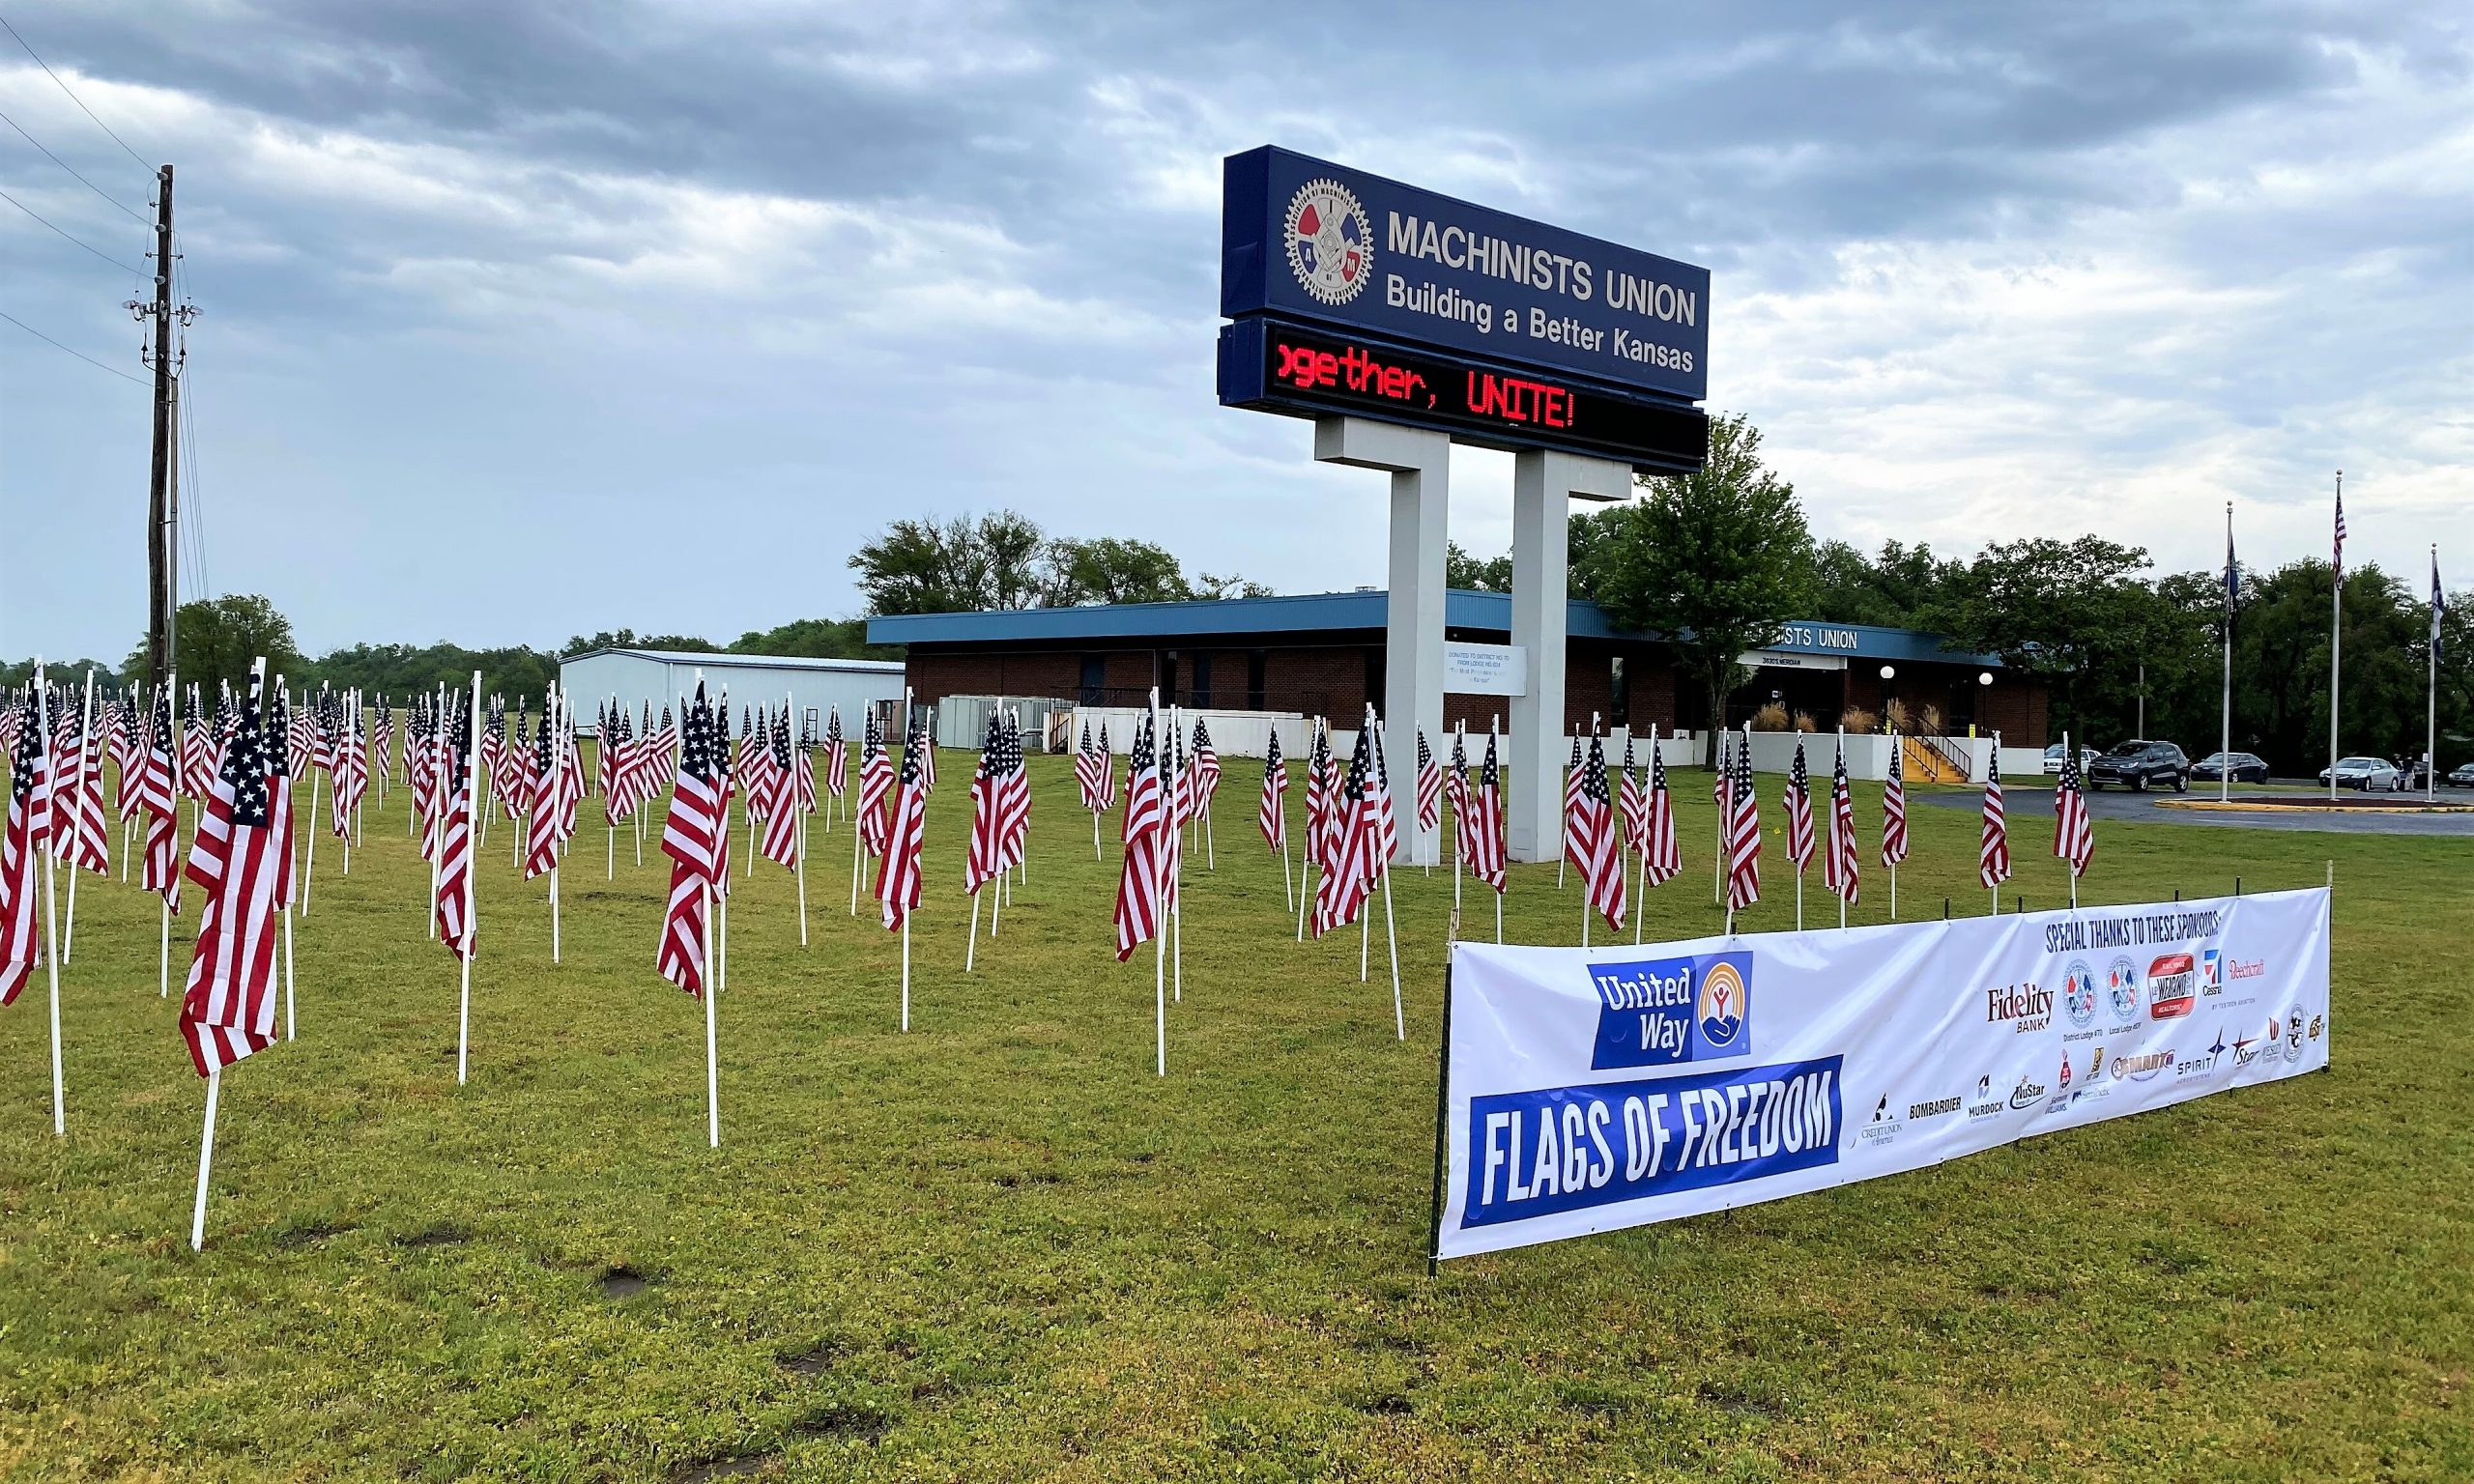 Wichita District 70 Salutes U.S. Military with Flags of Freedom Memorial Weekend Program